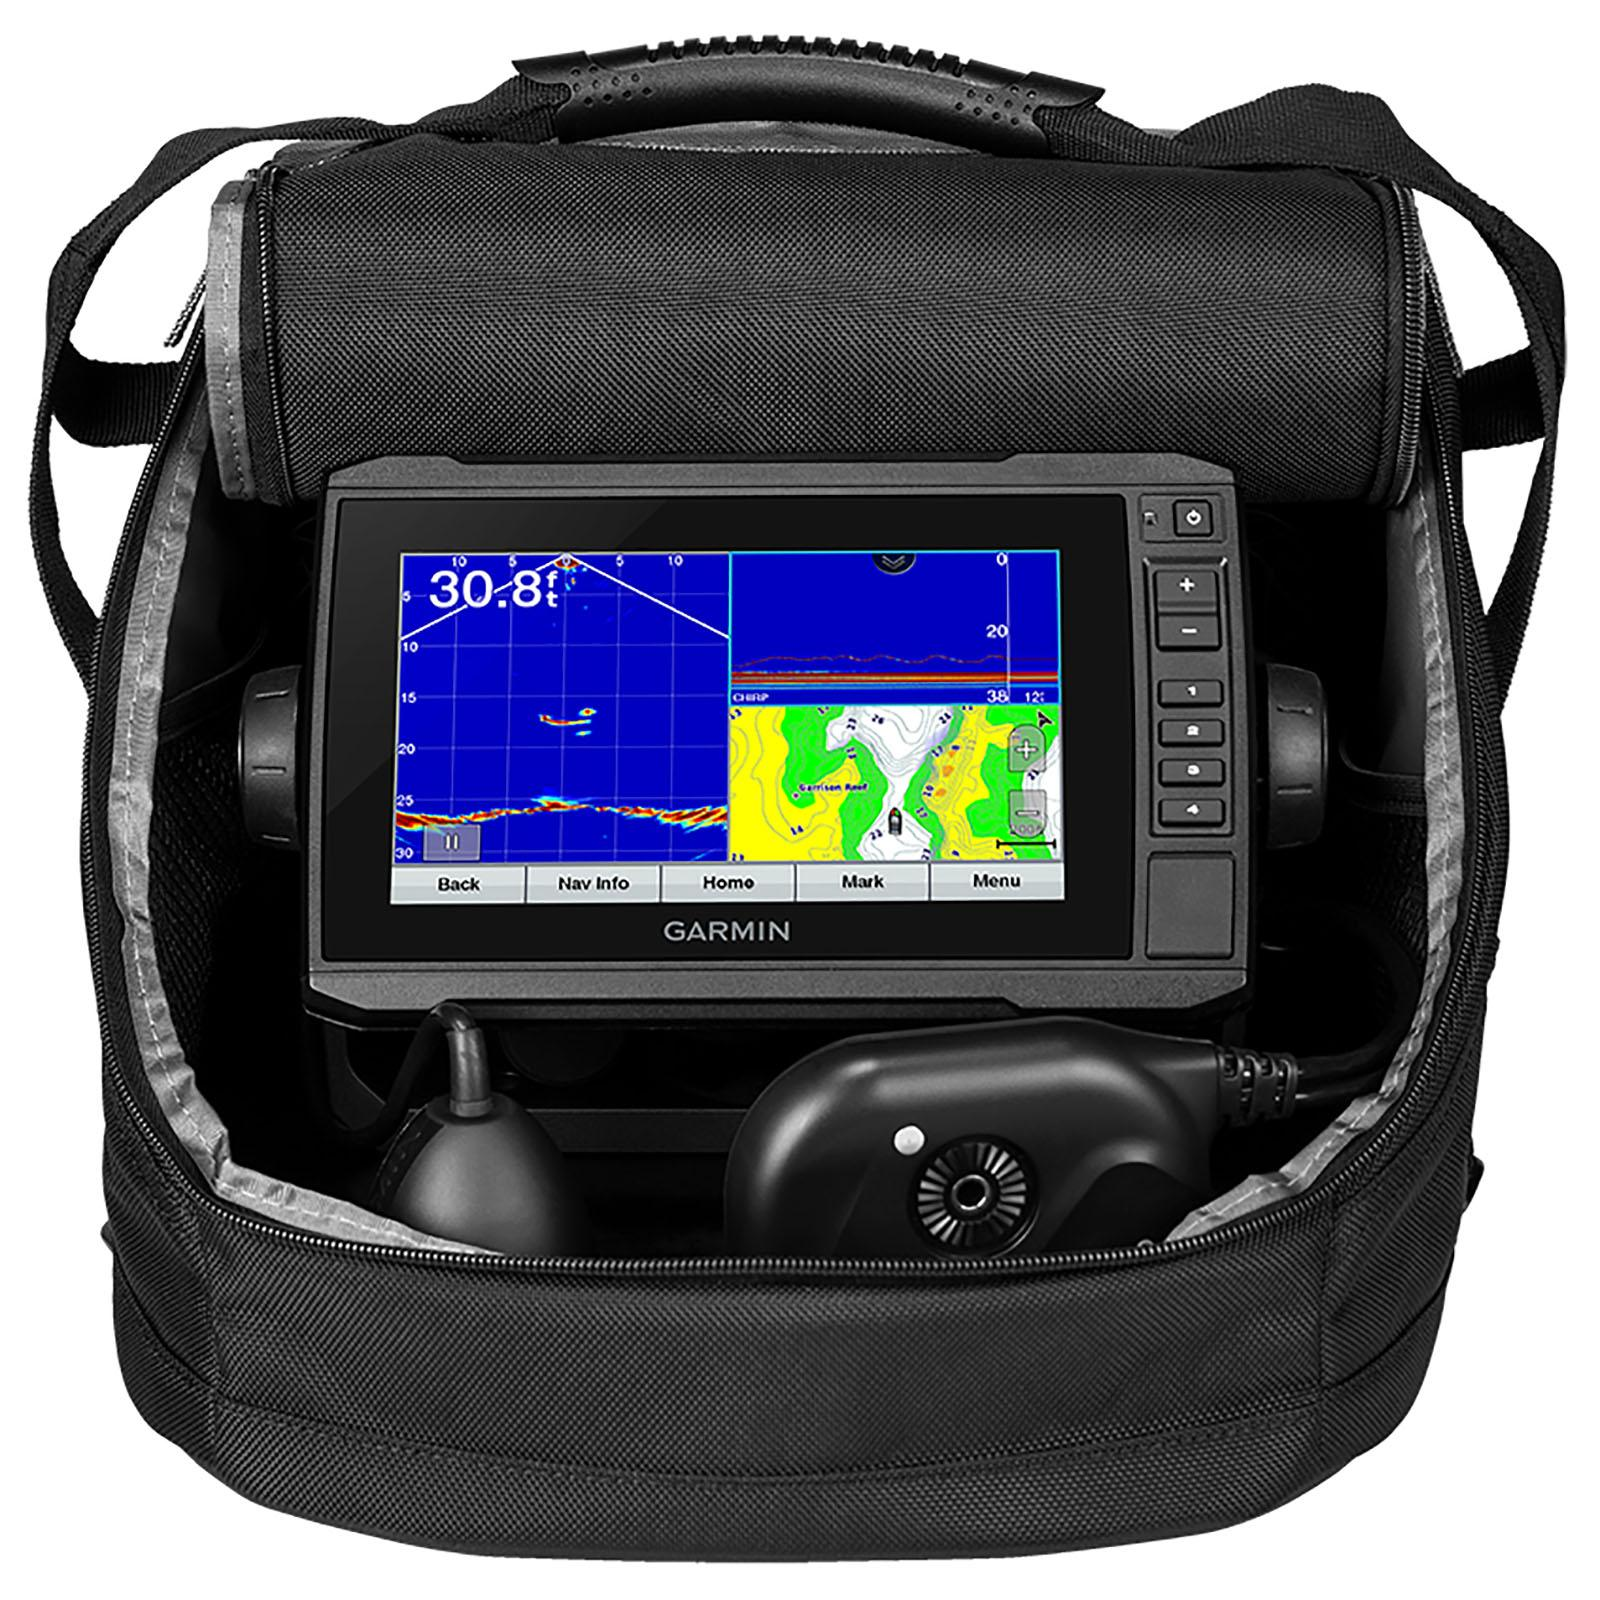 Garmin Panoptix Plus 73cv Ice Fishing Bundle w/ Echomap